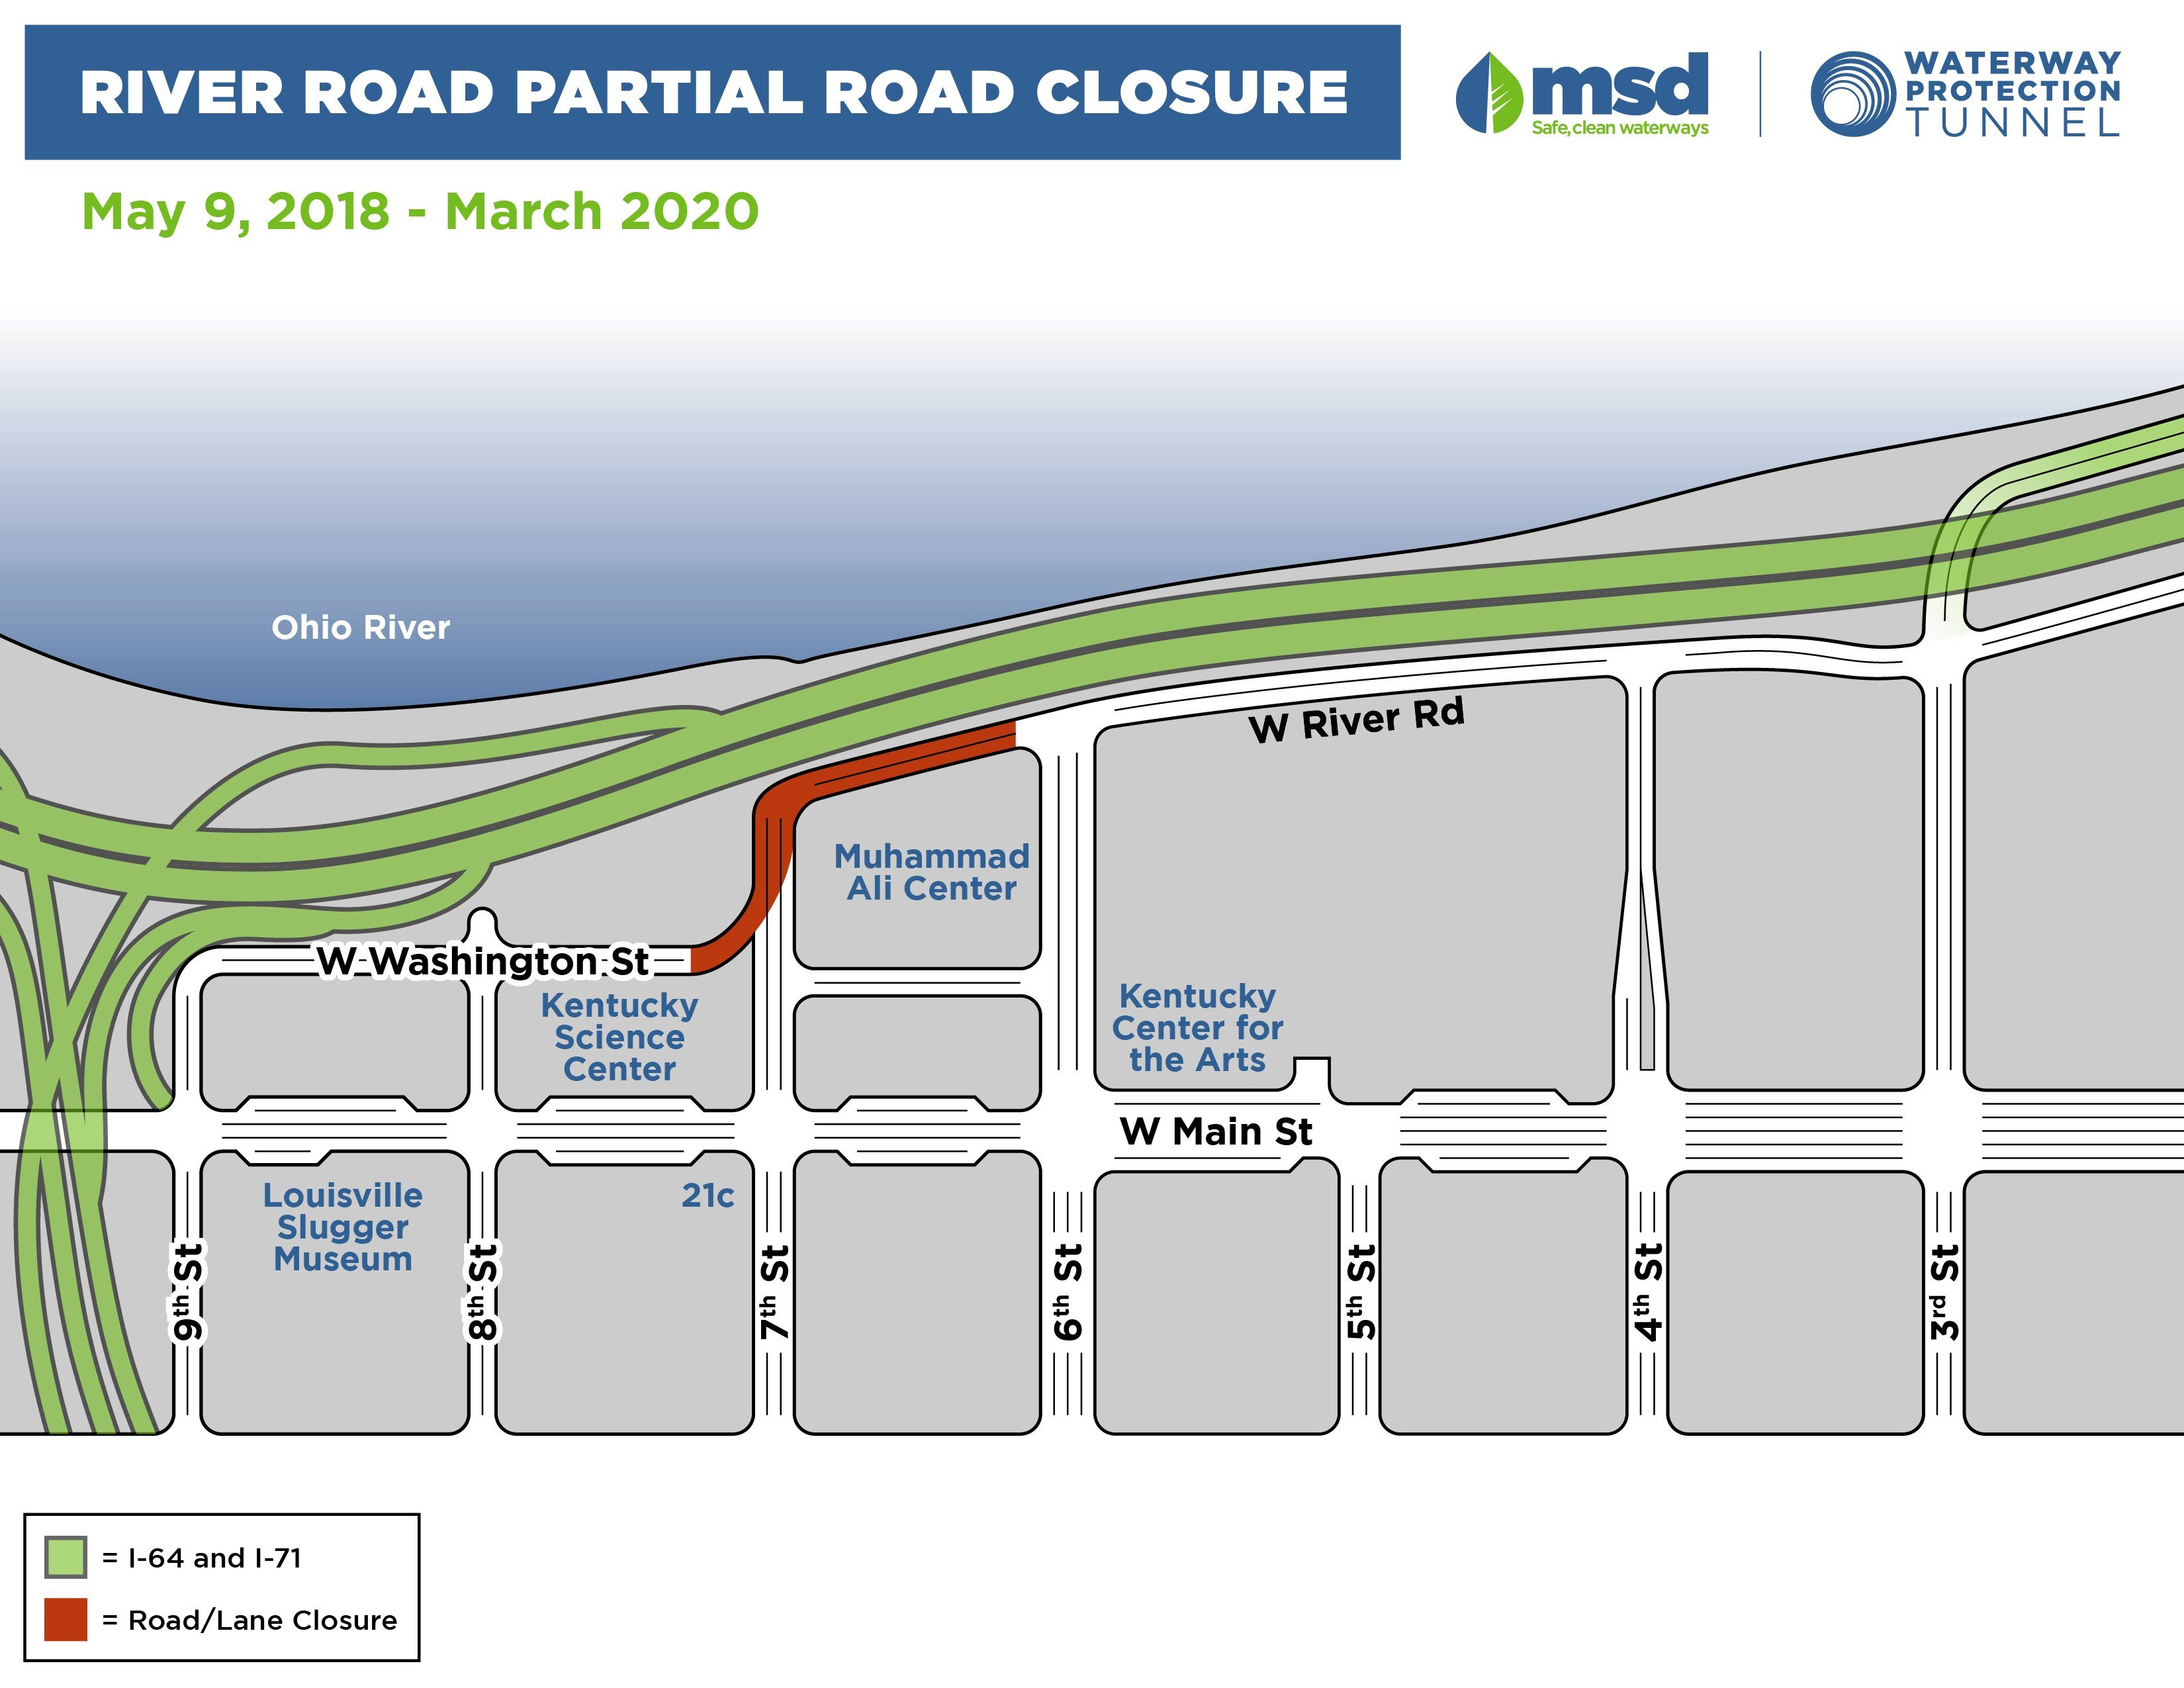 River Road will close May 9, 2018 through 2020 for MSD's waterway tunnel project.